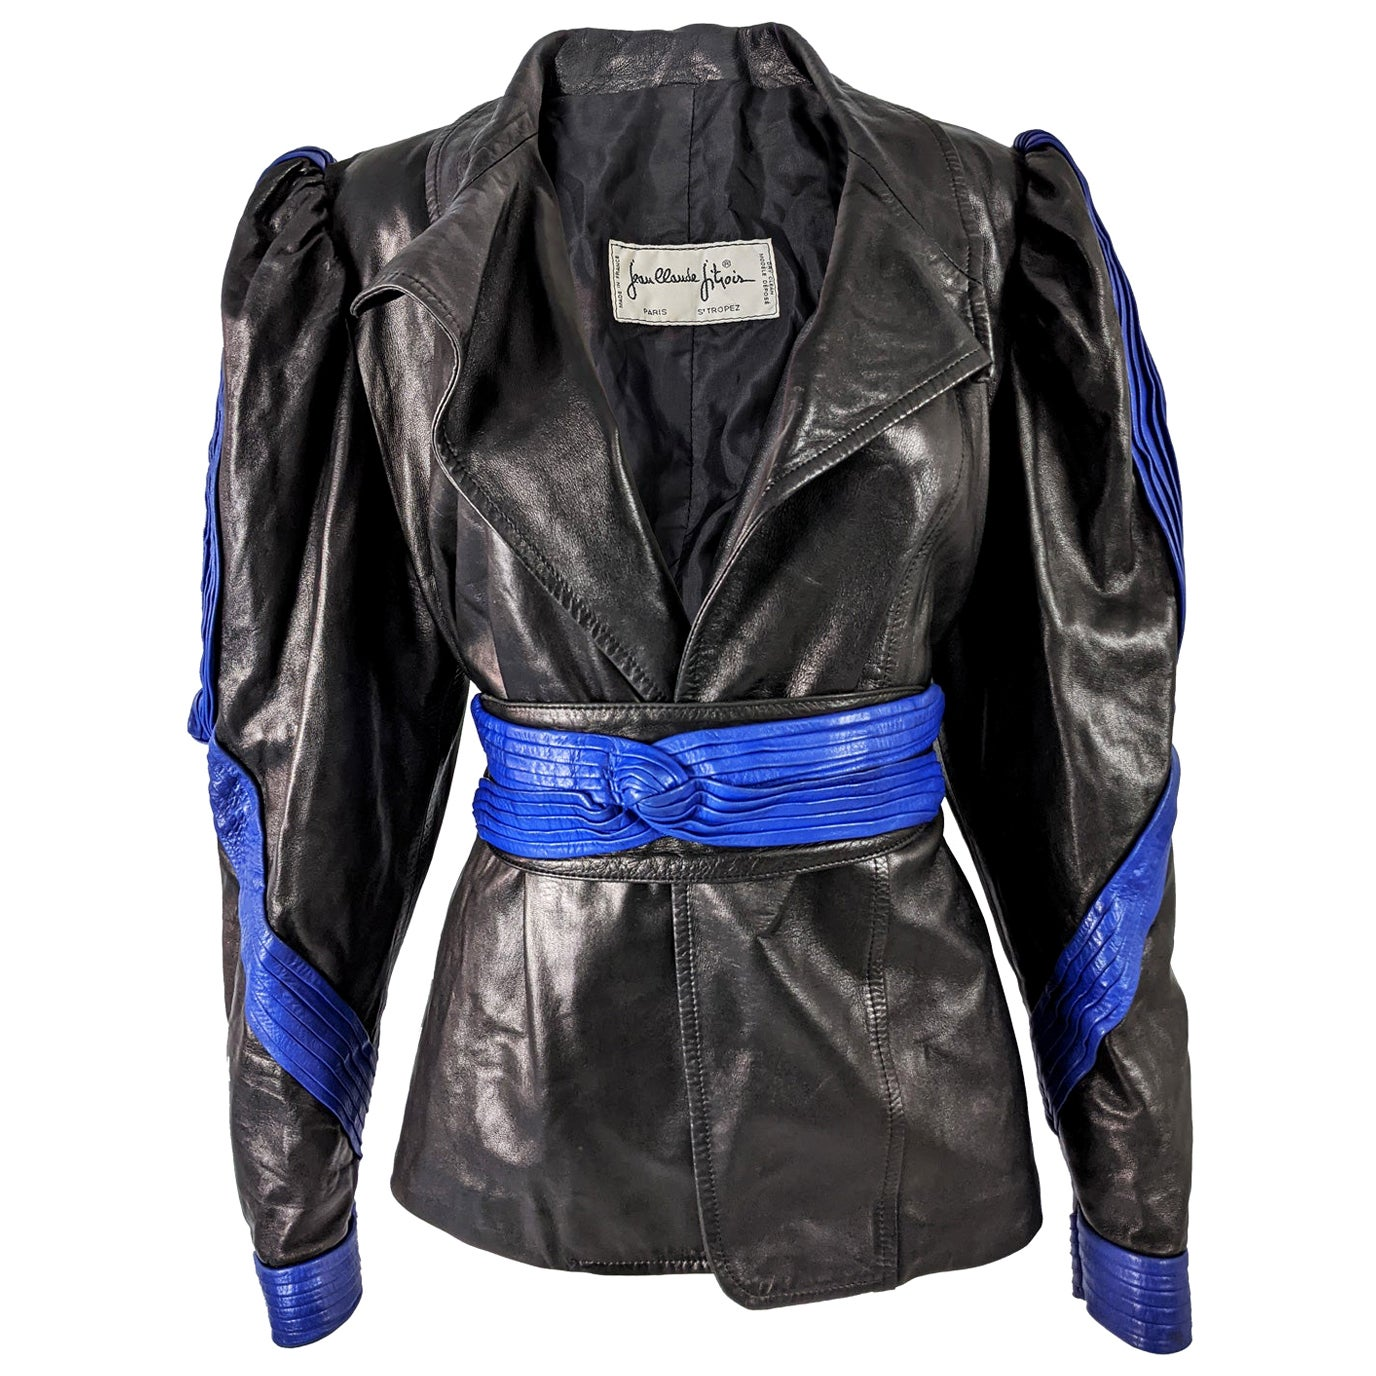 Jean Claude Jitrois Incredible Vintage Leather Jacket 1980s